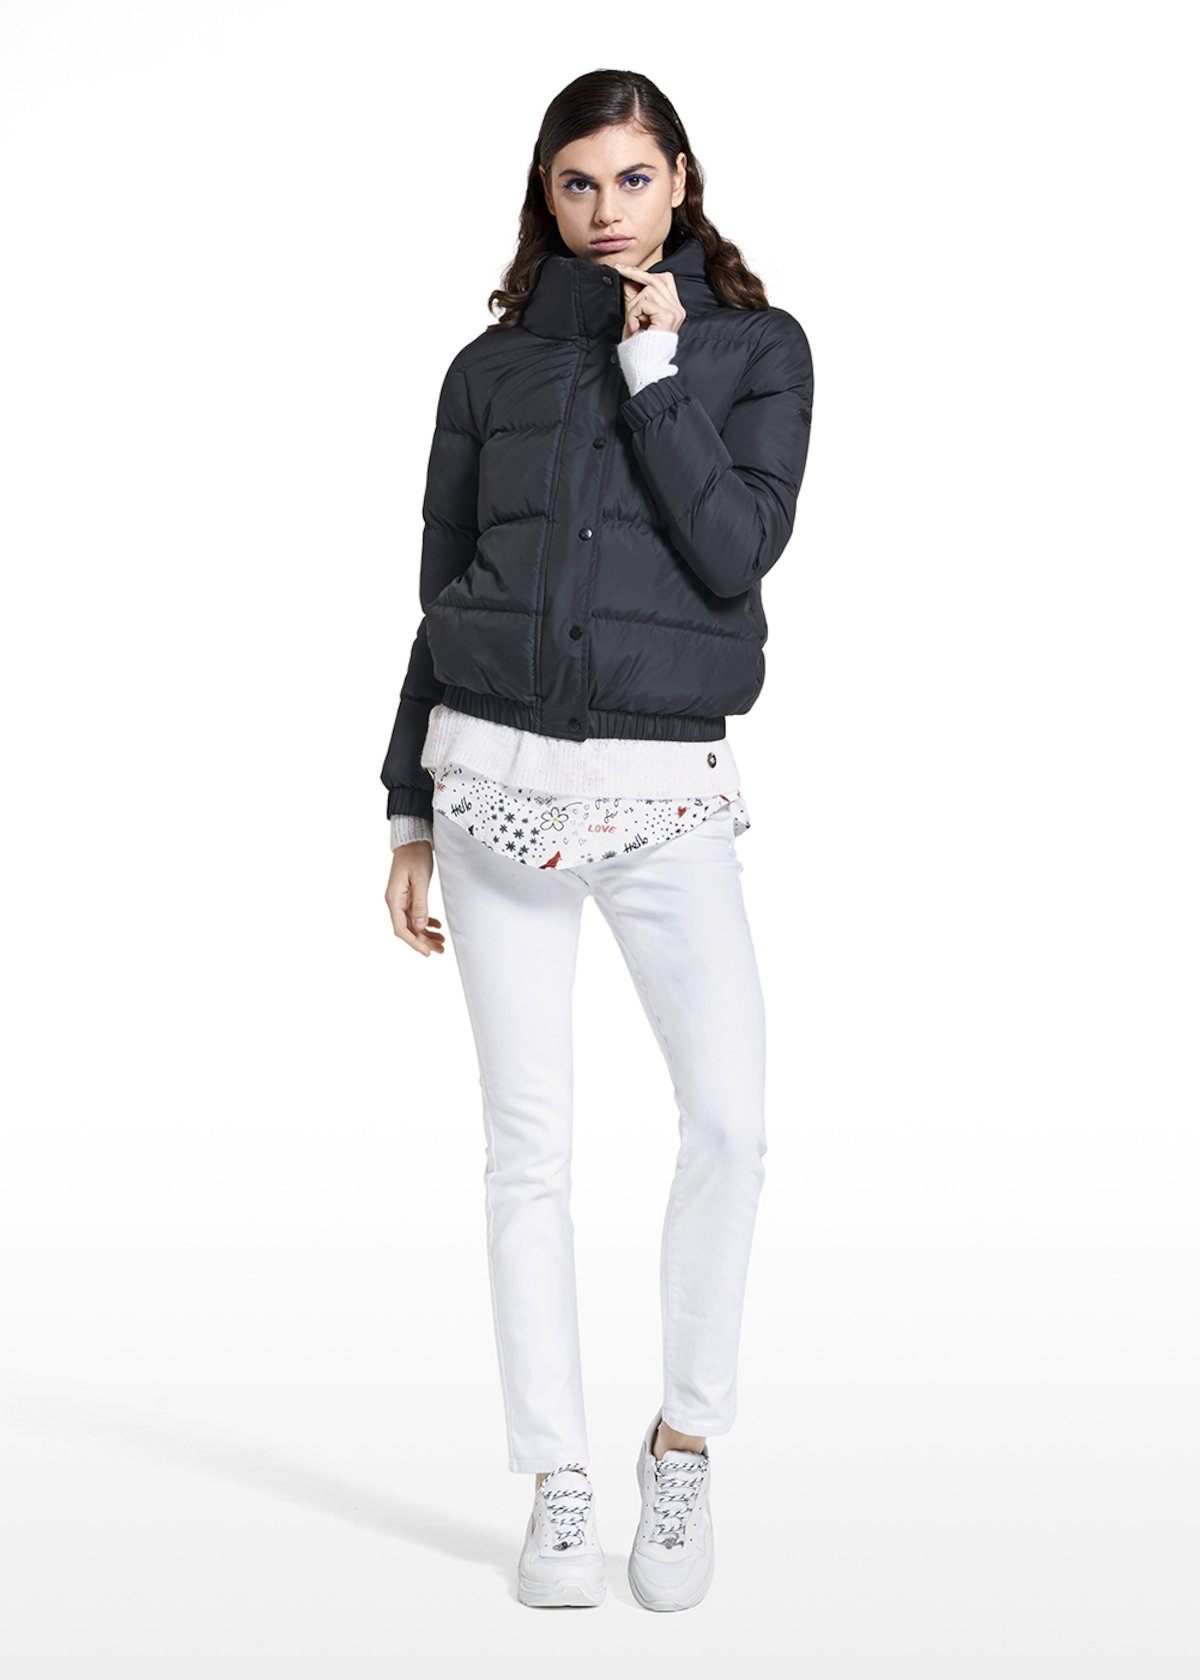 Down jacket Paliky with high collar - Black - Woman